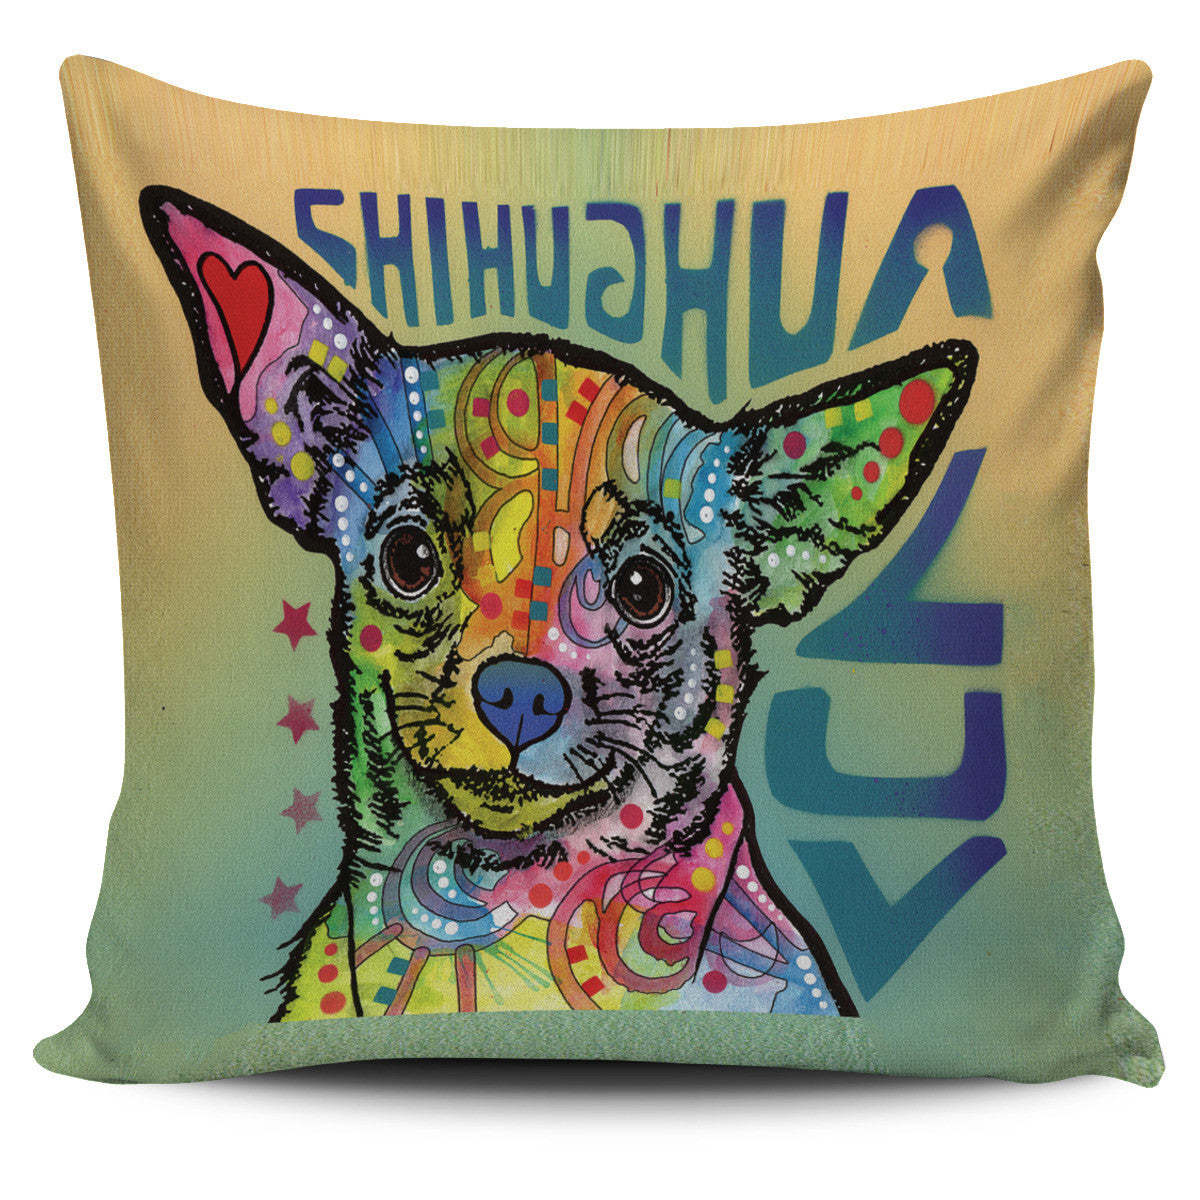 Chihuahua Pillow Covers Offer